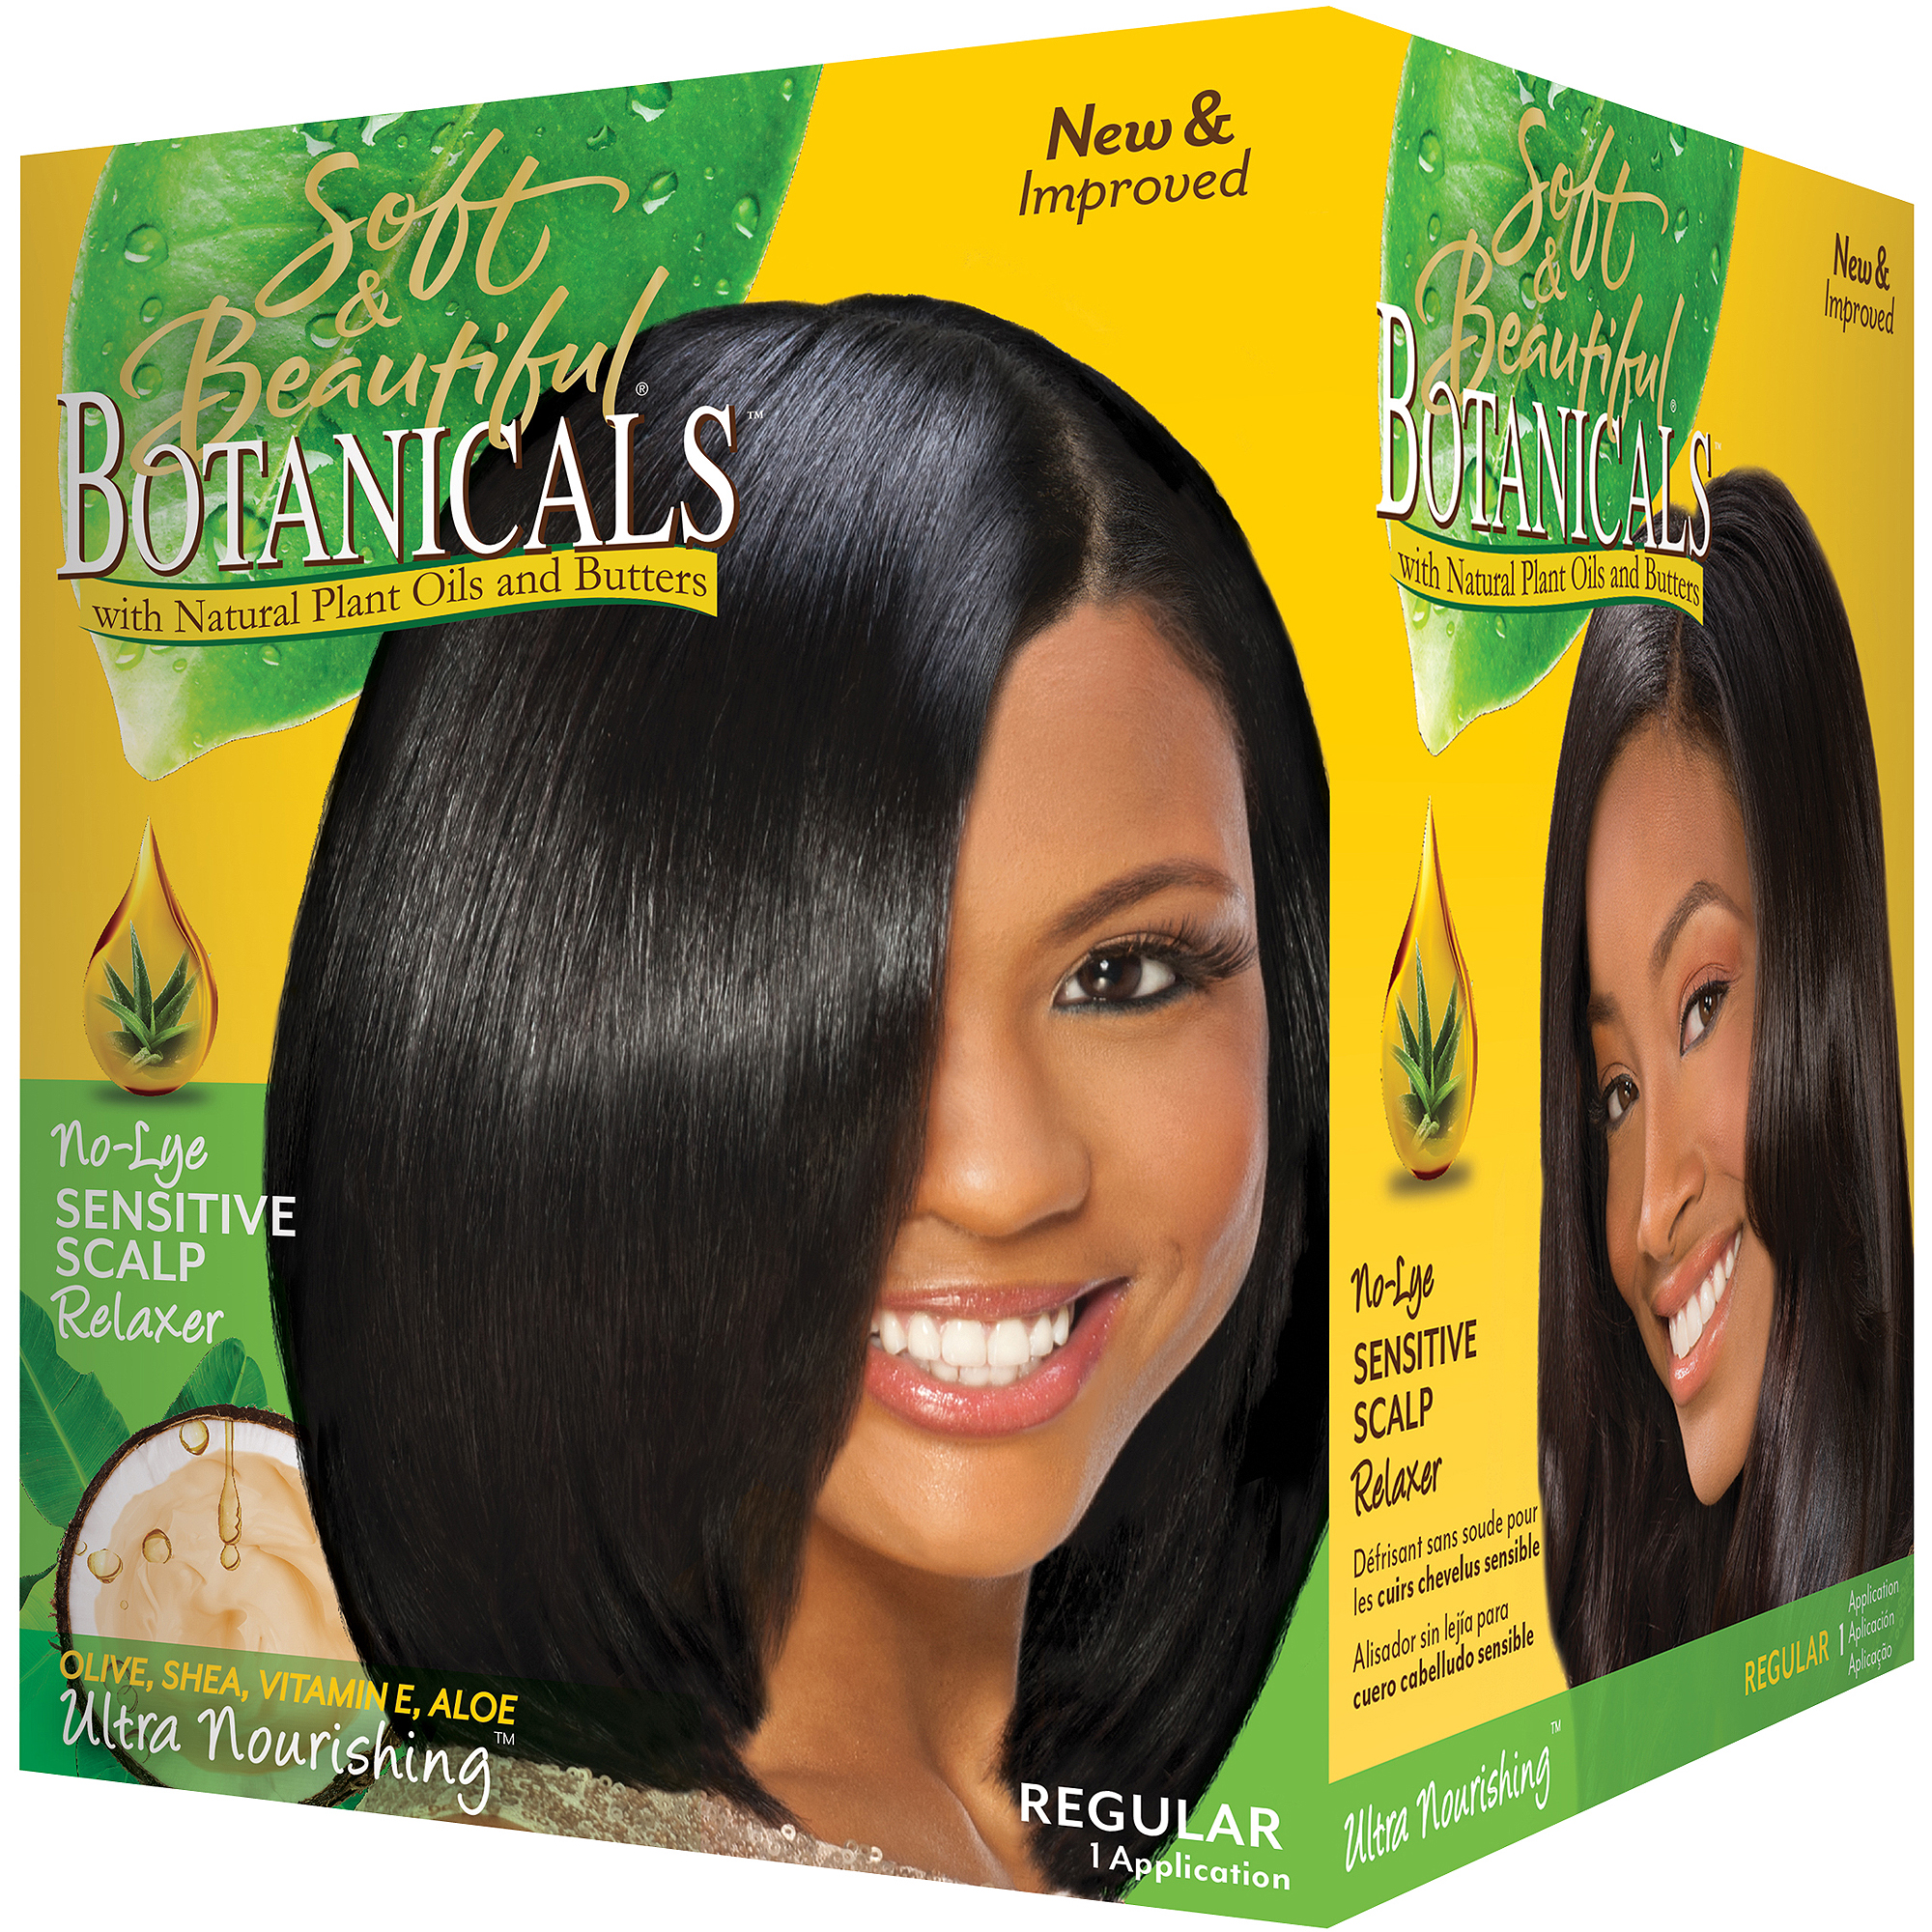 Soft & Beautiful Botanicals Regular No-Lye Sensitive Scalp Relaxer